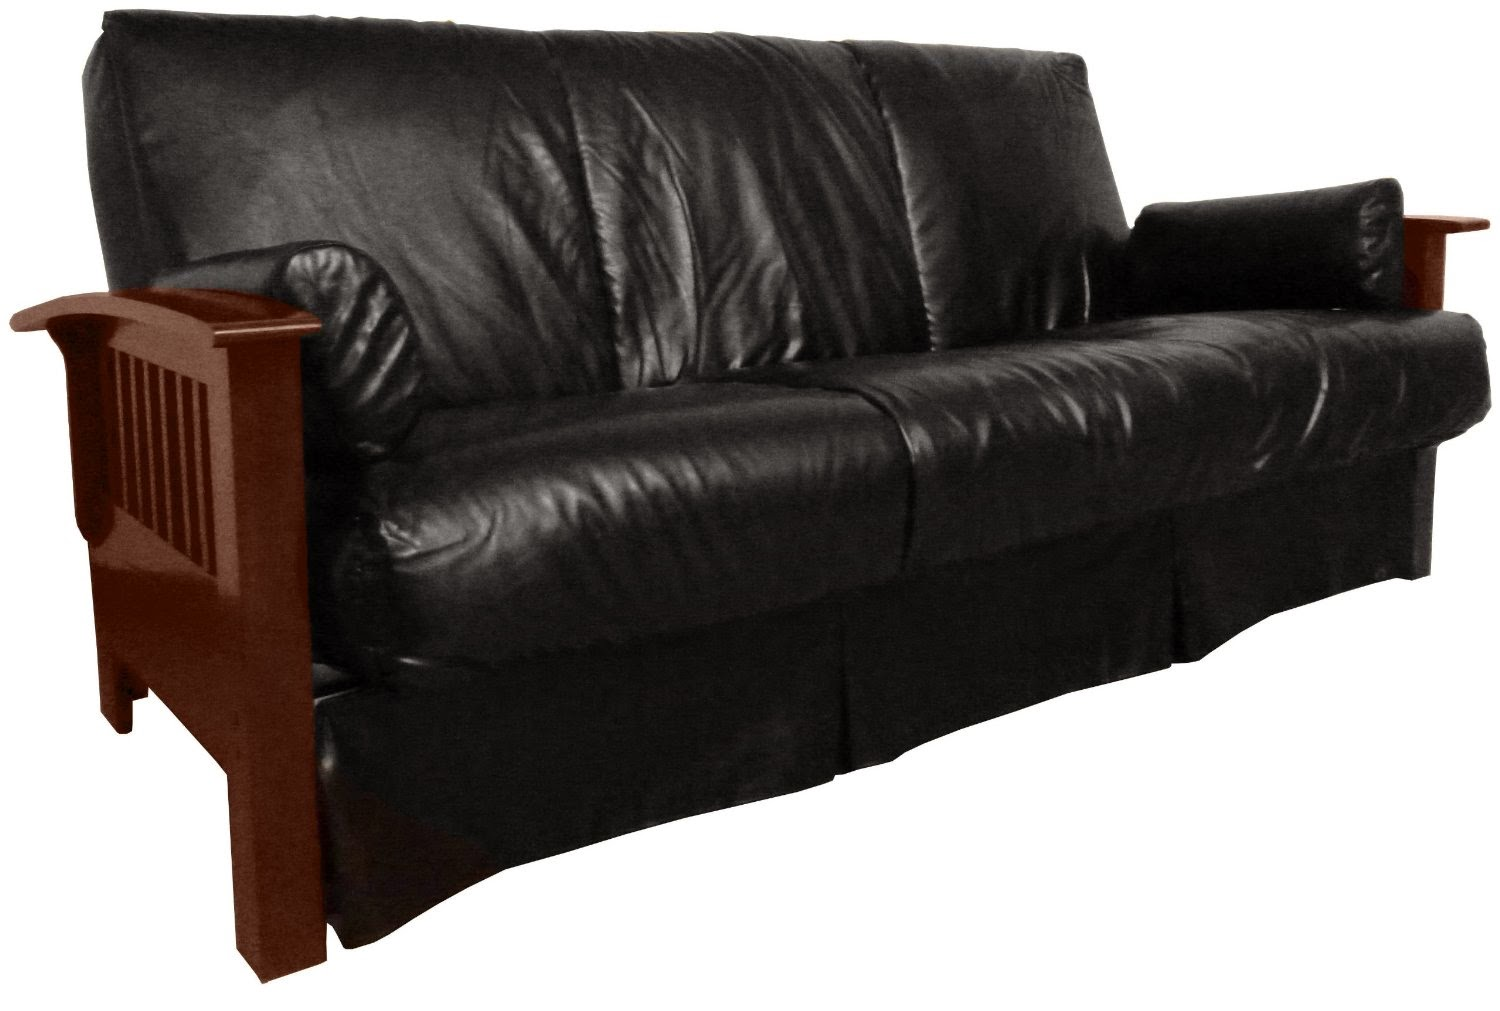 Black Leather Sofa ~ Queen Size Leather Sofa Bed